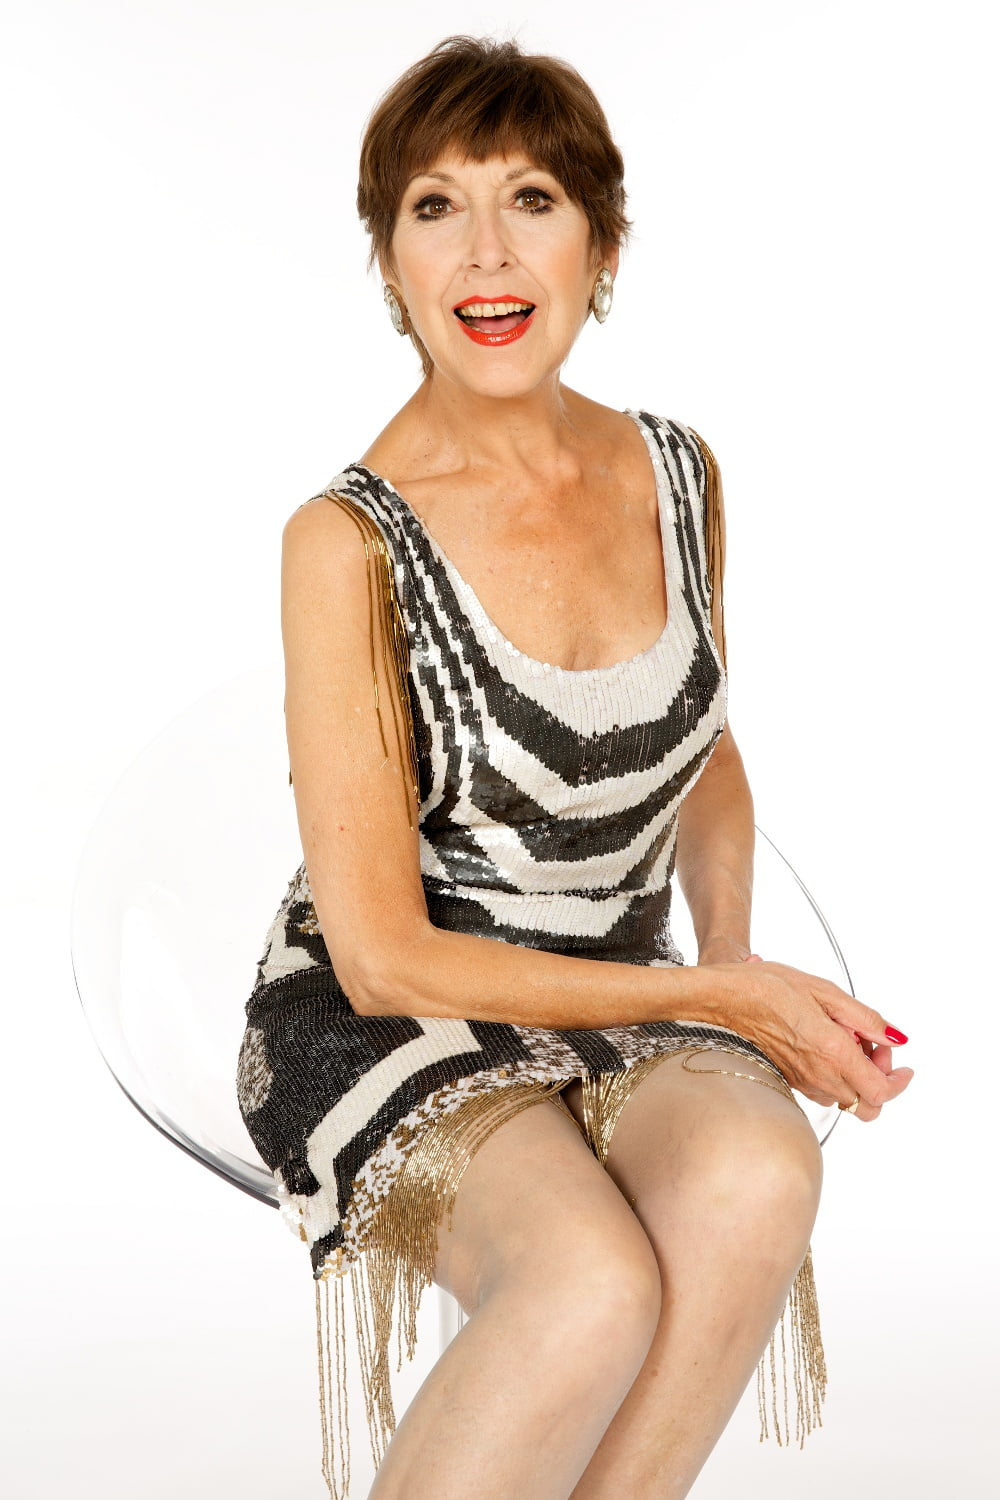 Anita Harris in Concert - legendary star of the 60s